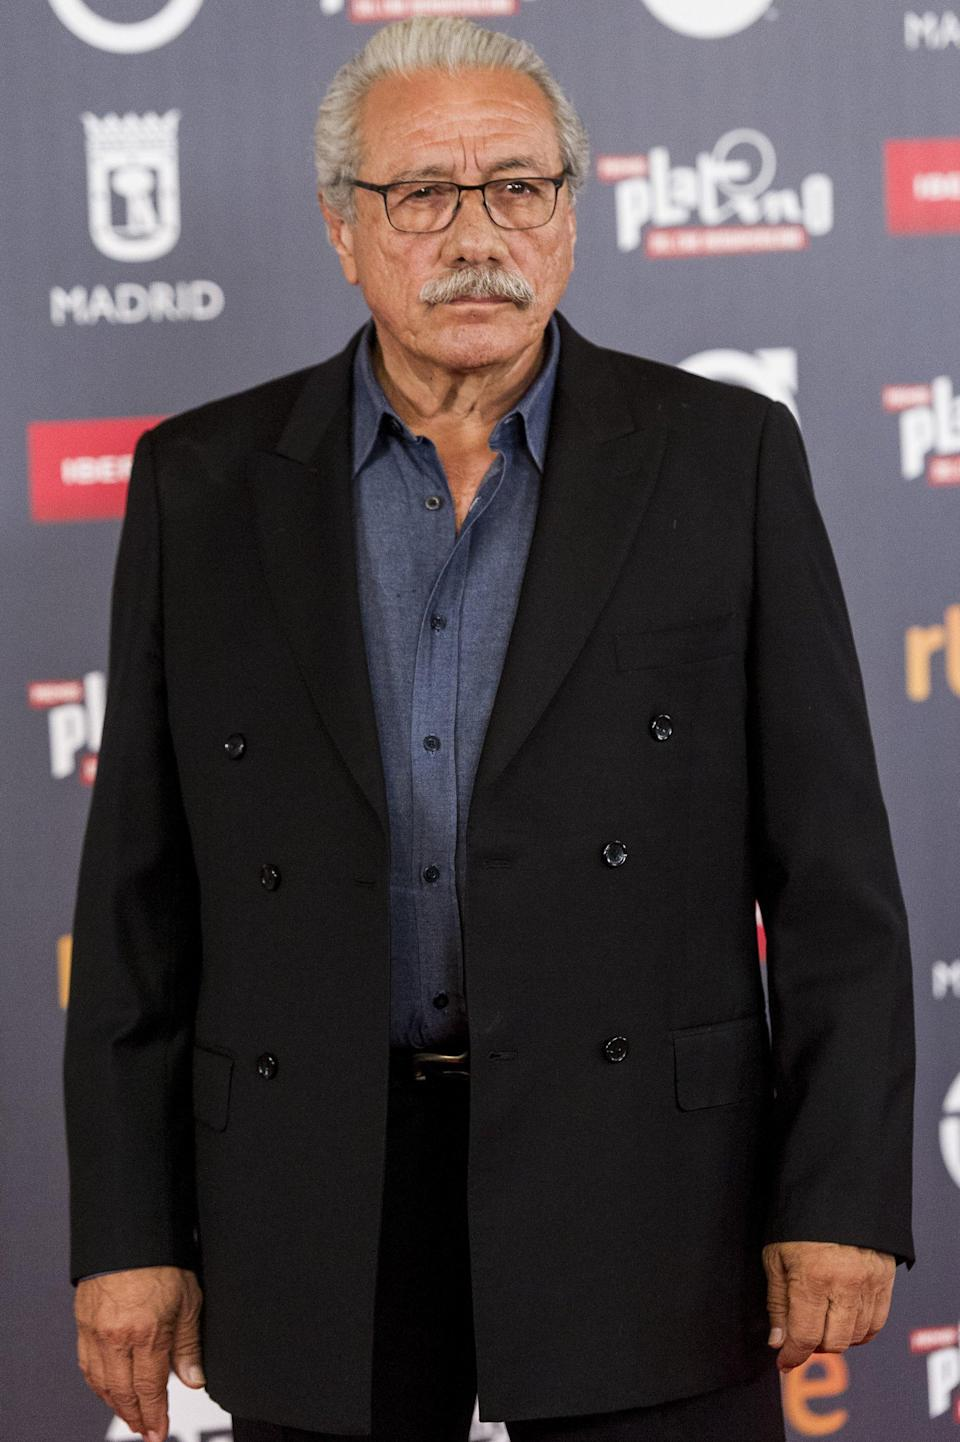 <p>Edward won over our hearts when he played A.B. Quintanilla Jr., Selena's dad, but his roster is full of accolades from before and after the movie. He's reprising his role as Gaff for <strong>Blade Runner 2049</strong> and continues to take on roles for the small screen.</p>